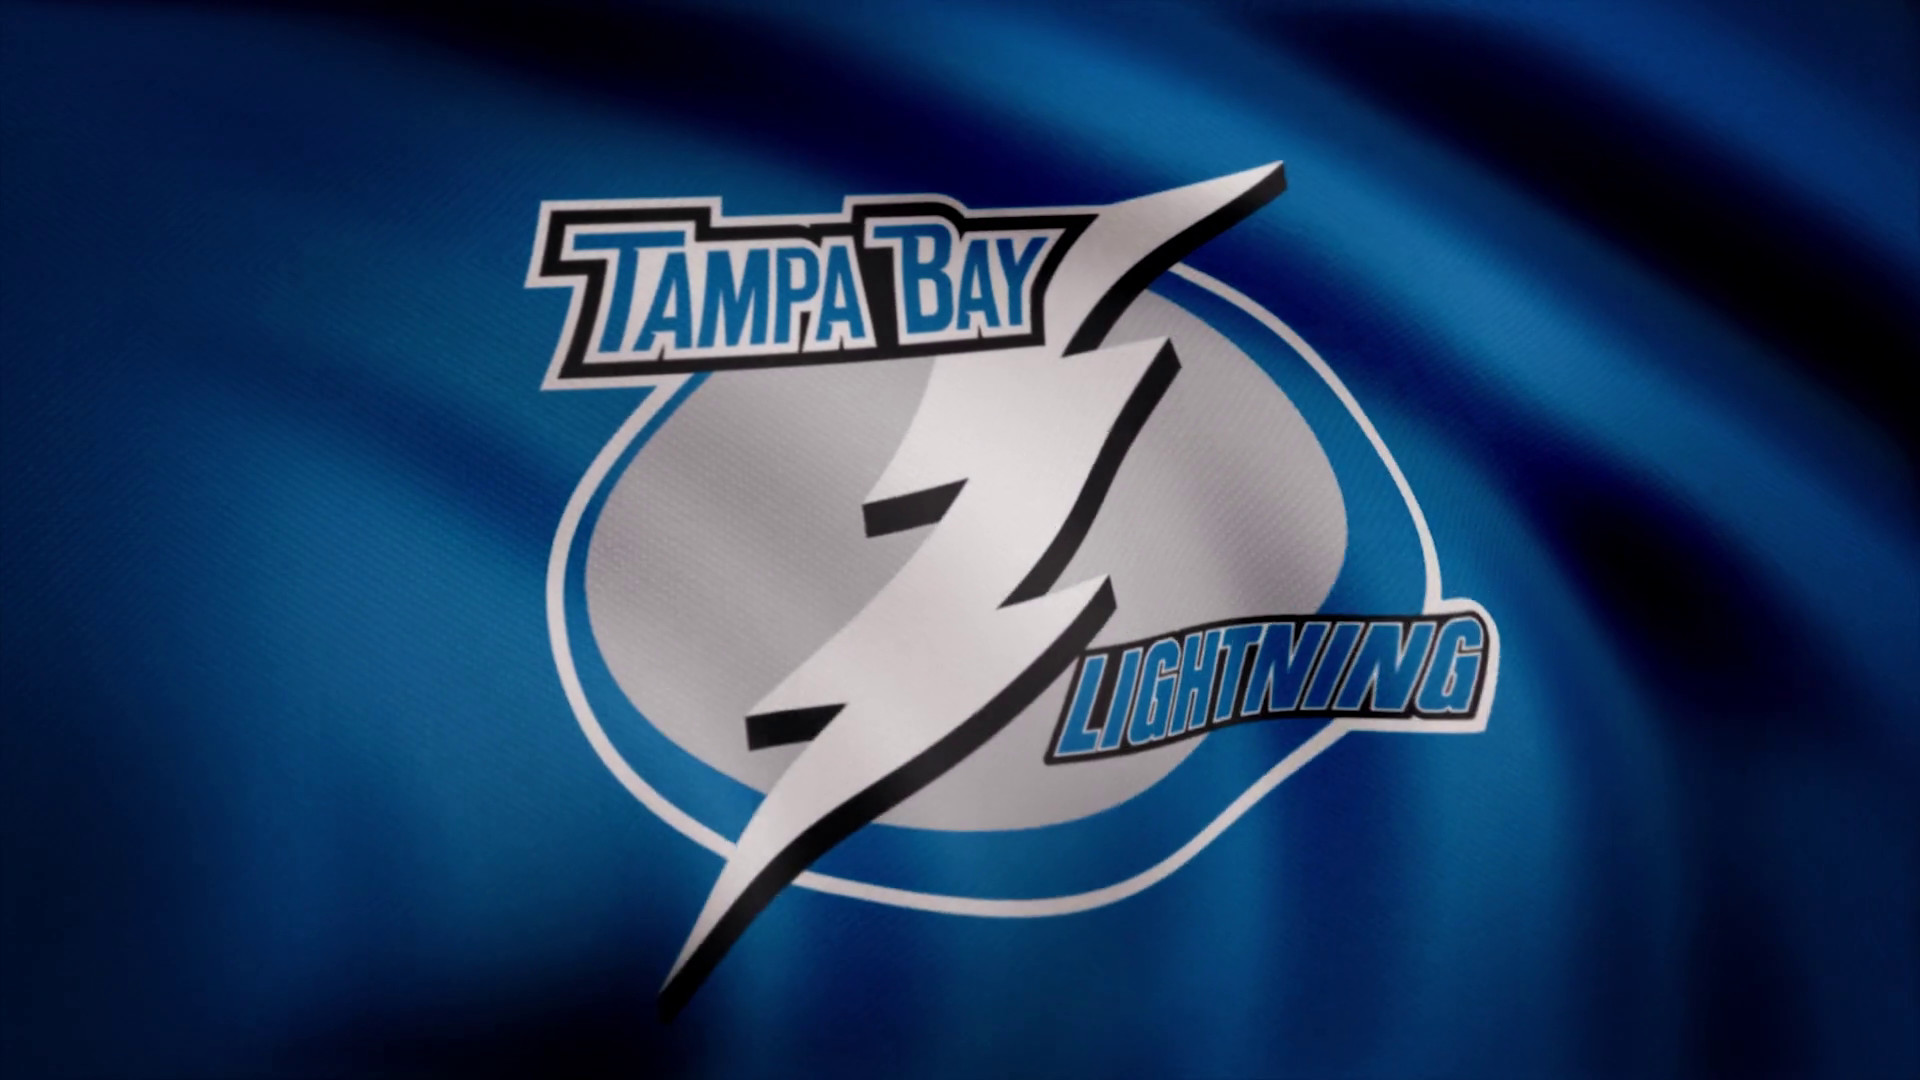 1920x1080 USA - NEW YORK, 12 August 2018: Waving flag with Tampa Bay Lightning NHL  hockey team logo. Close-up of waving flag with Tampa Bay Lightning NHL  hockey team ...